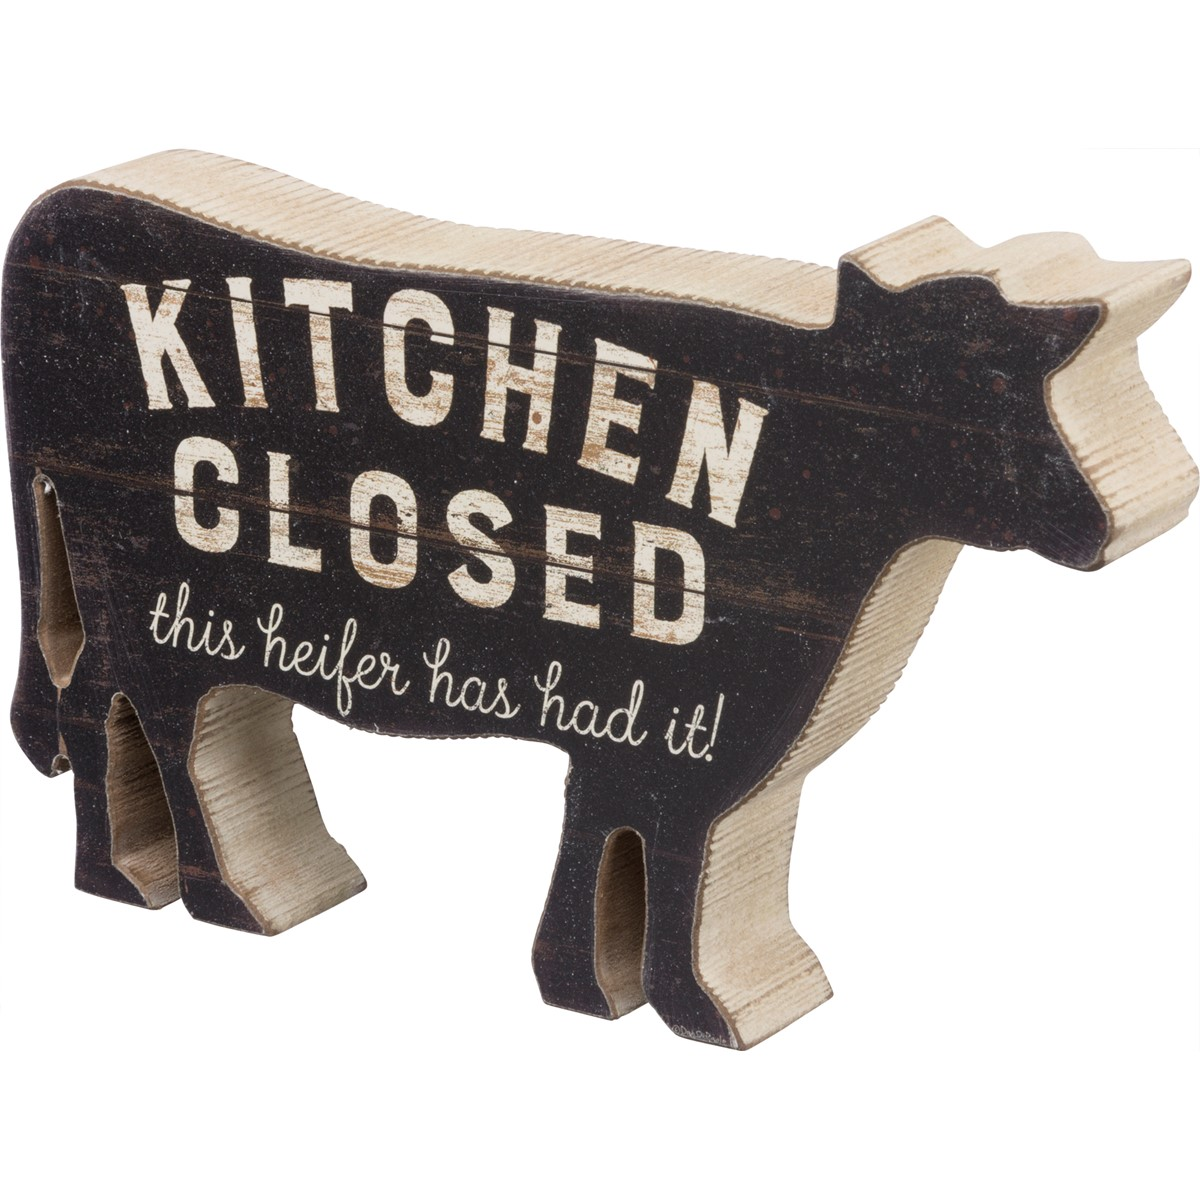 "Chunky Sitter - Kitchen Closed Heifer Has Had It - 7"" x 4.50"" x 1"" - Wood, Paper"